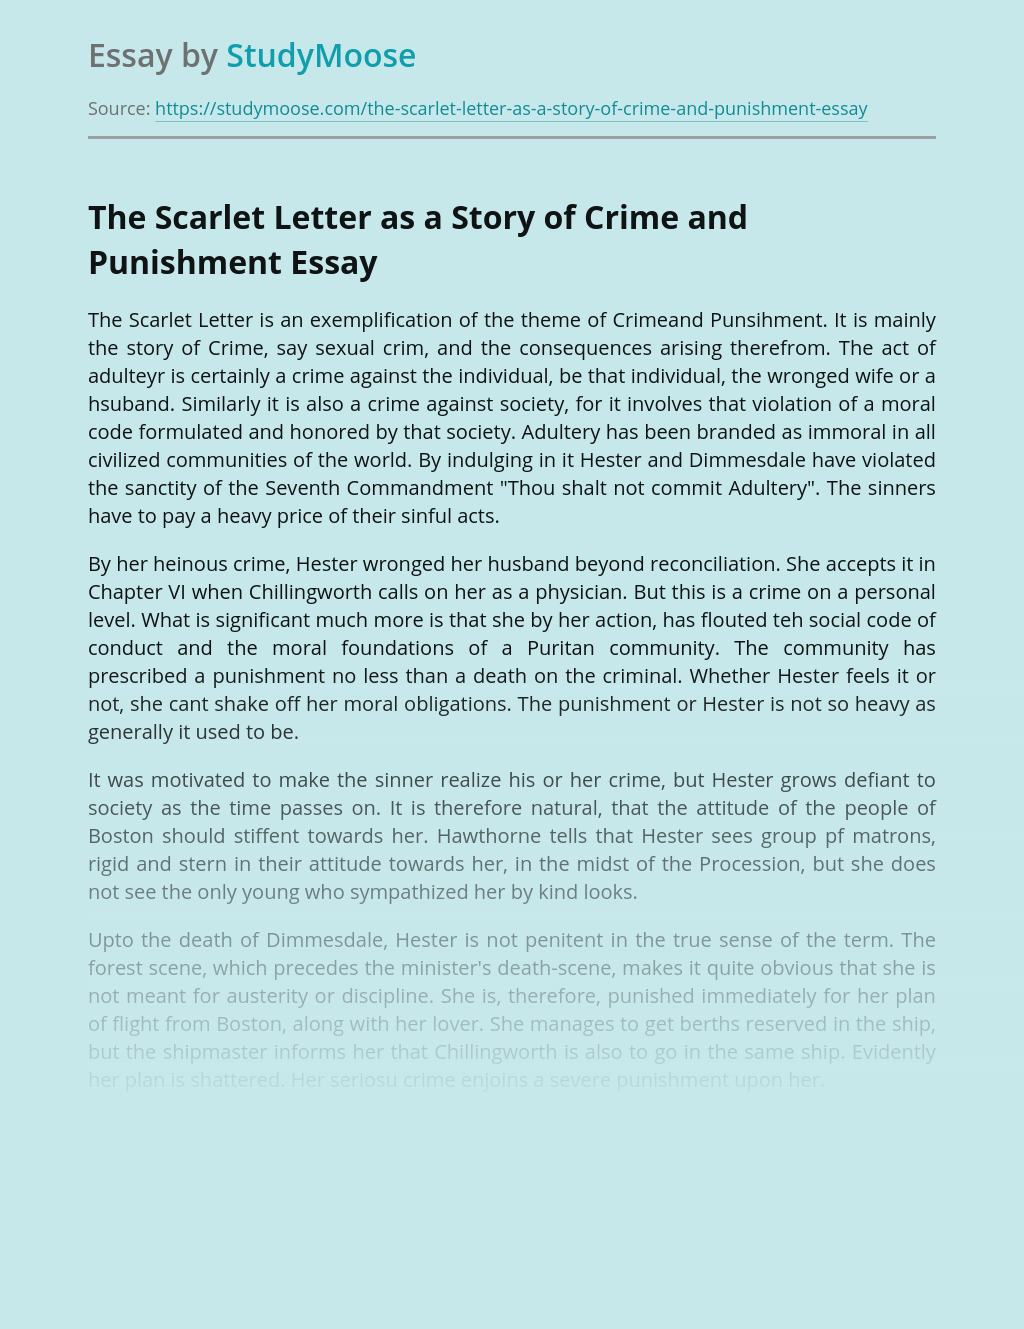 The Scarlet Letter as a Story of Crime and Punishment